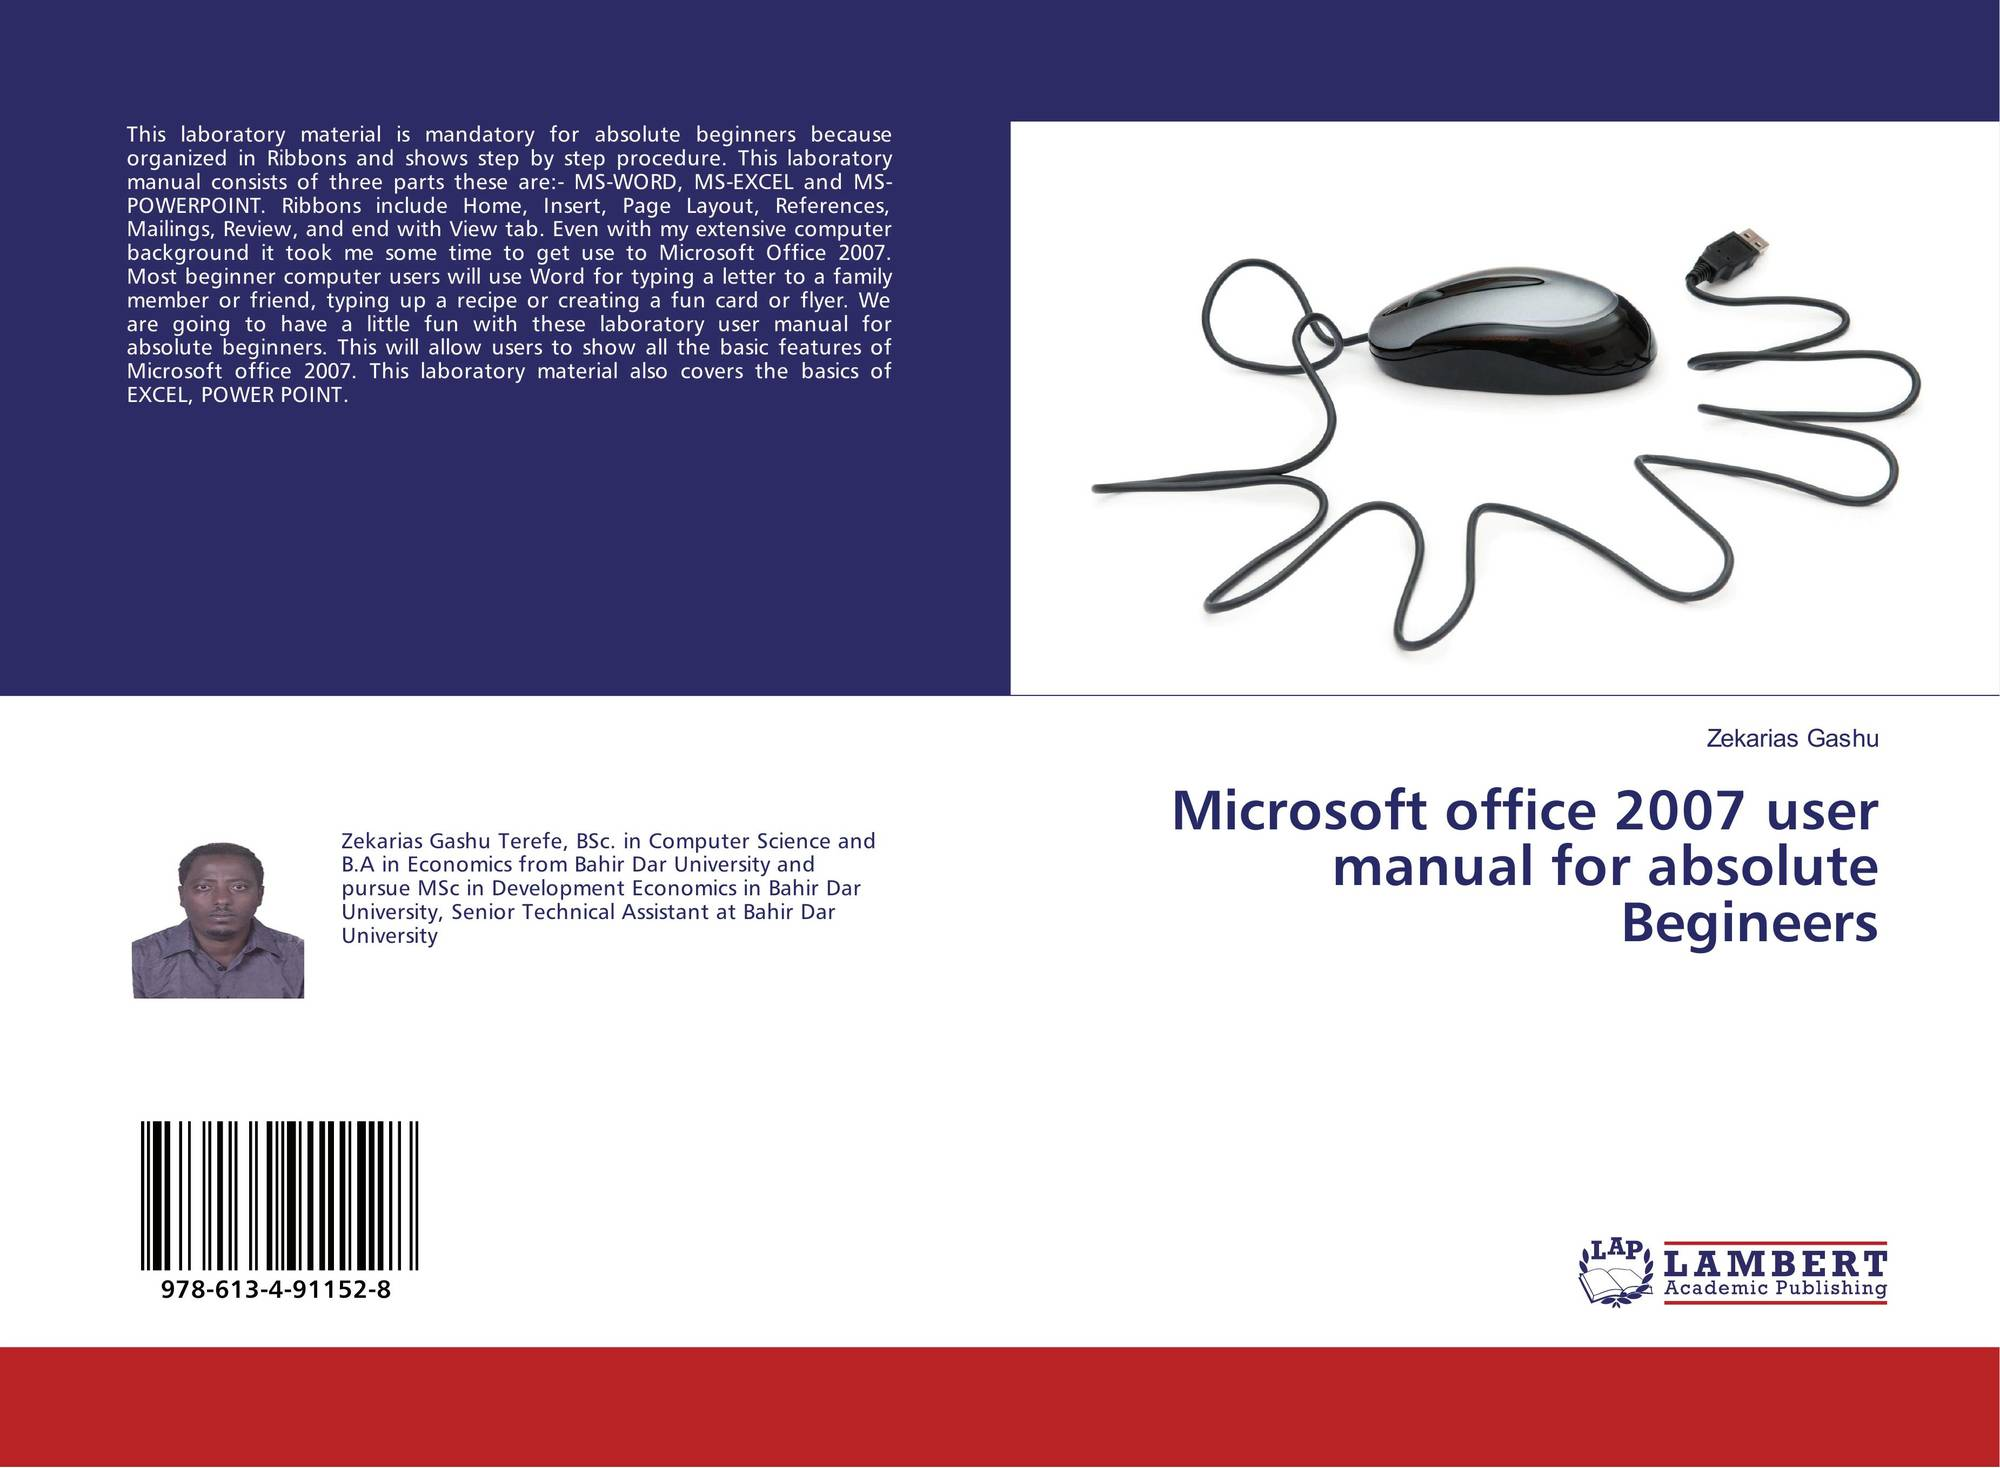 microsoft office 2007 user manual for absolute begineers 978 613 4 rh morebooks de microsoft office access 2007 user guide office 2007 user guide